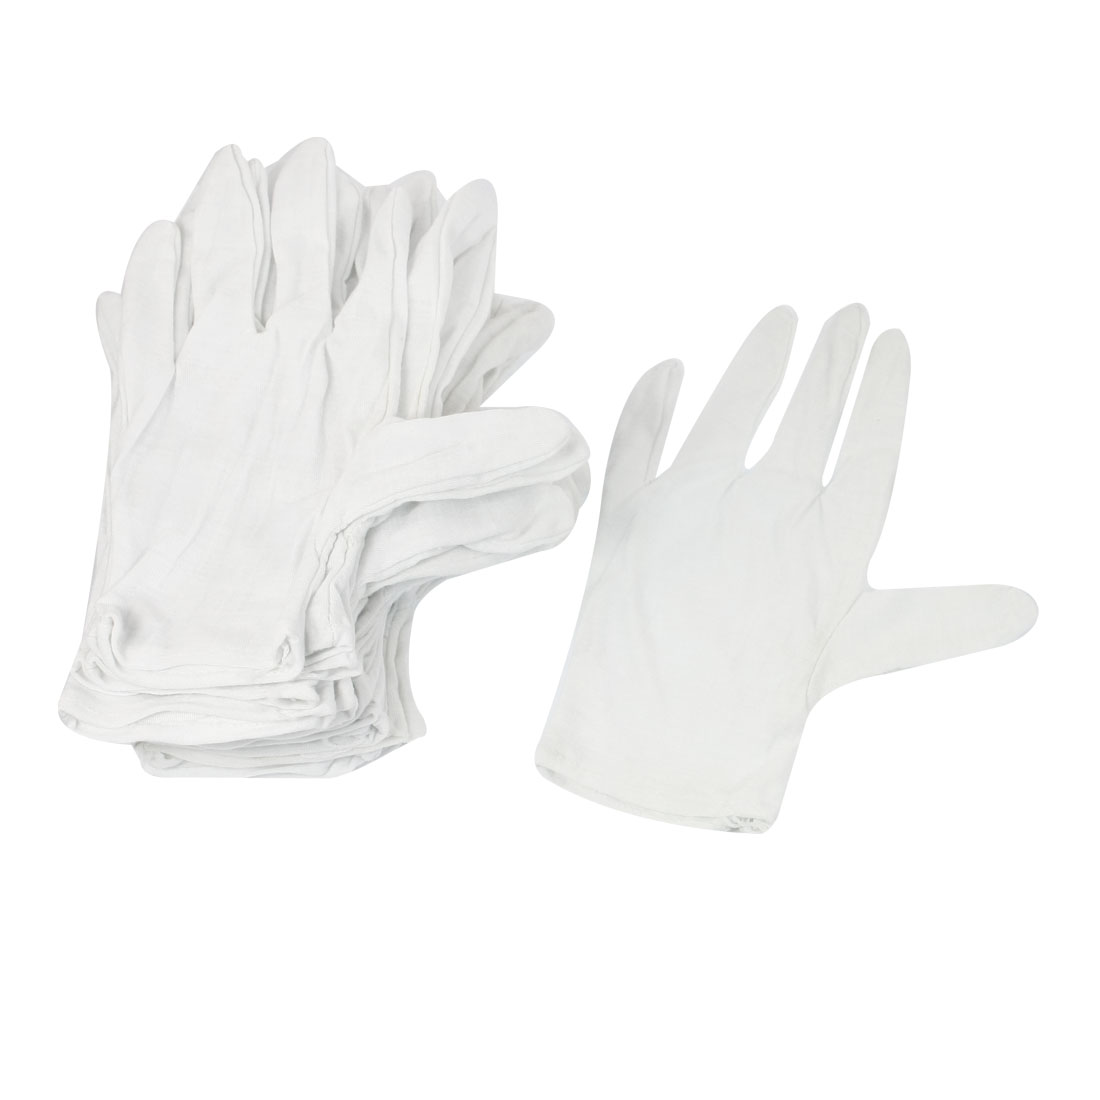 12 Pairs Anti-static Anti-skid Gloves ESD PC Computer Working White